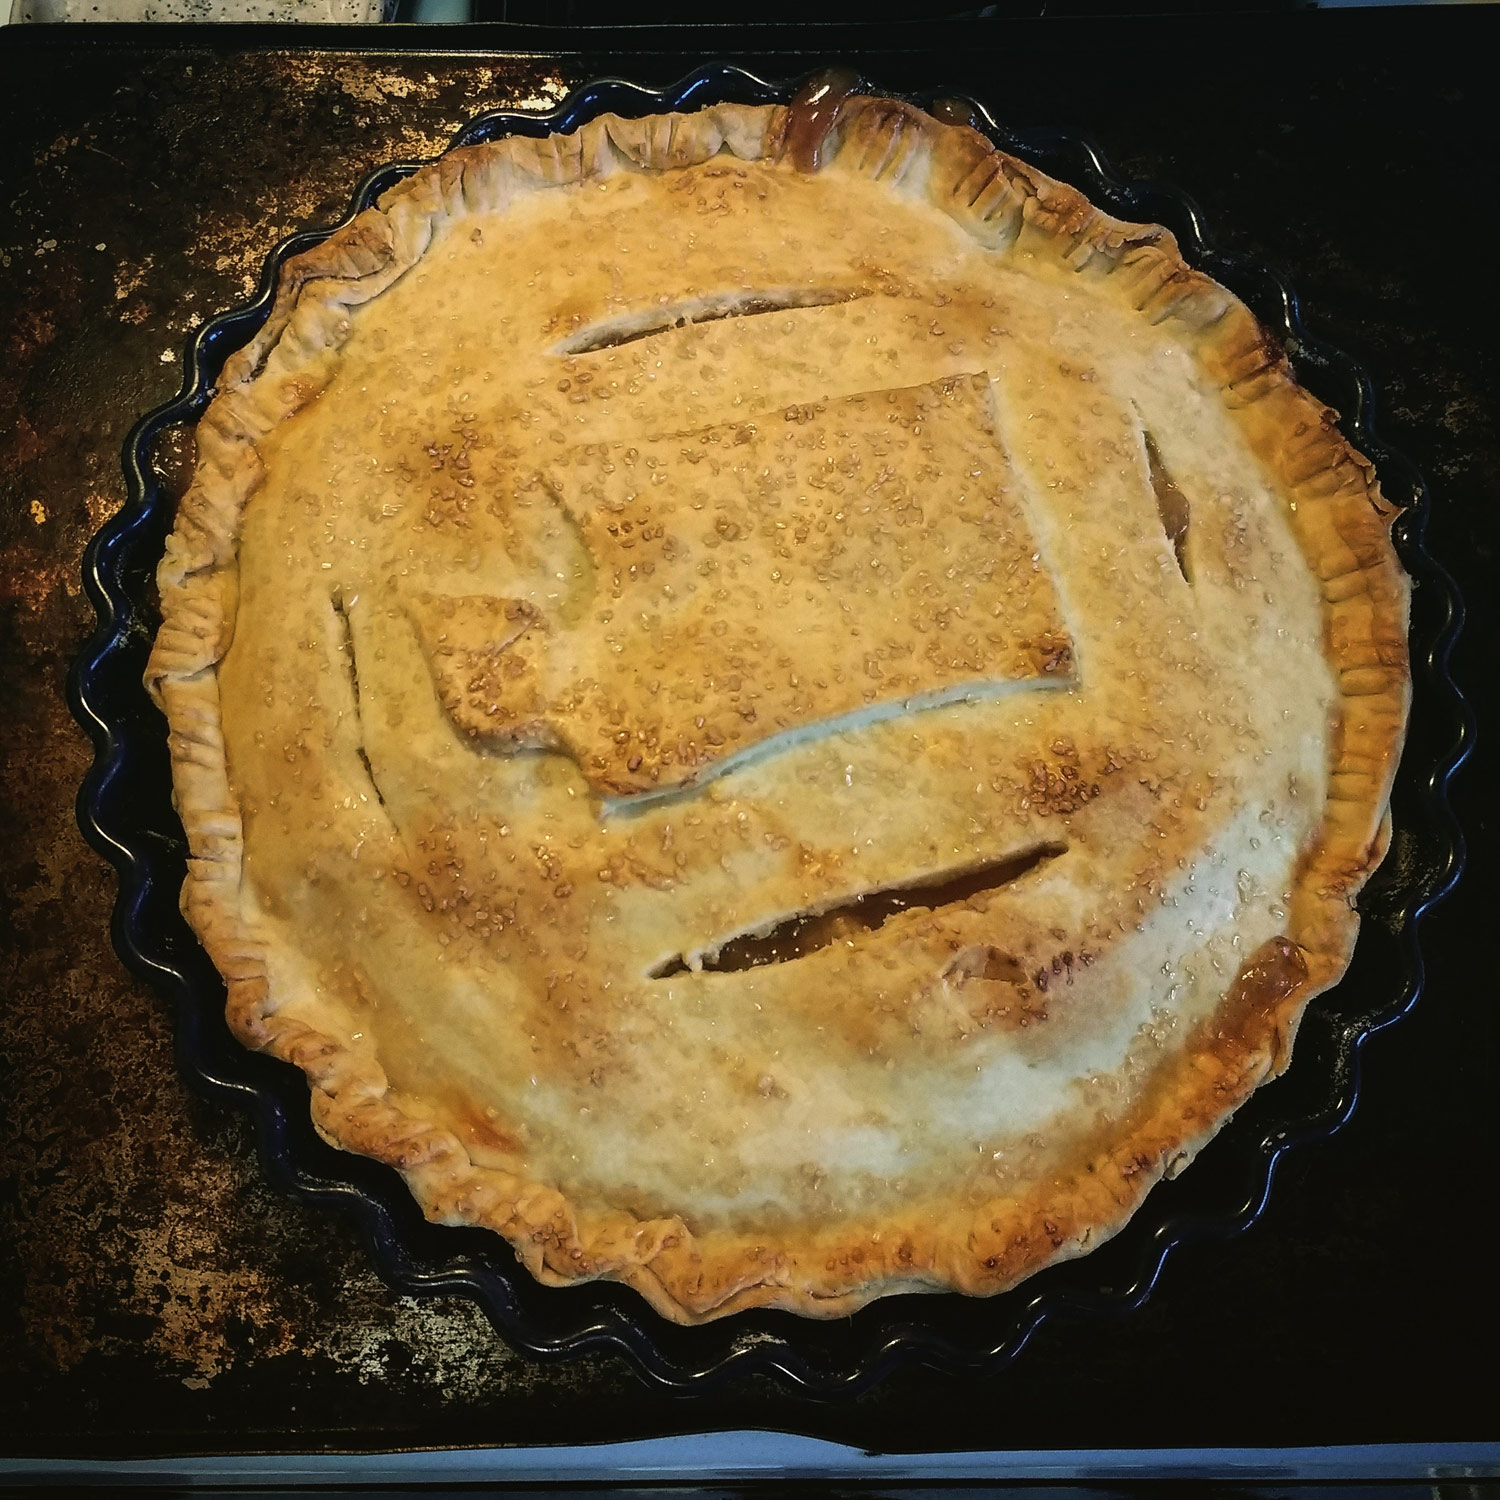 The apple pie featured in this episode.  State of Washington pictured in crust cut-out.